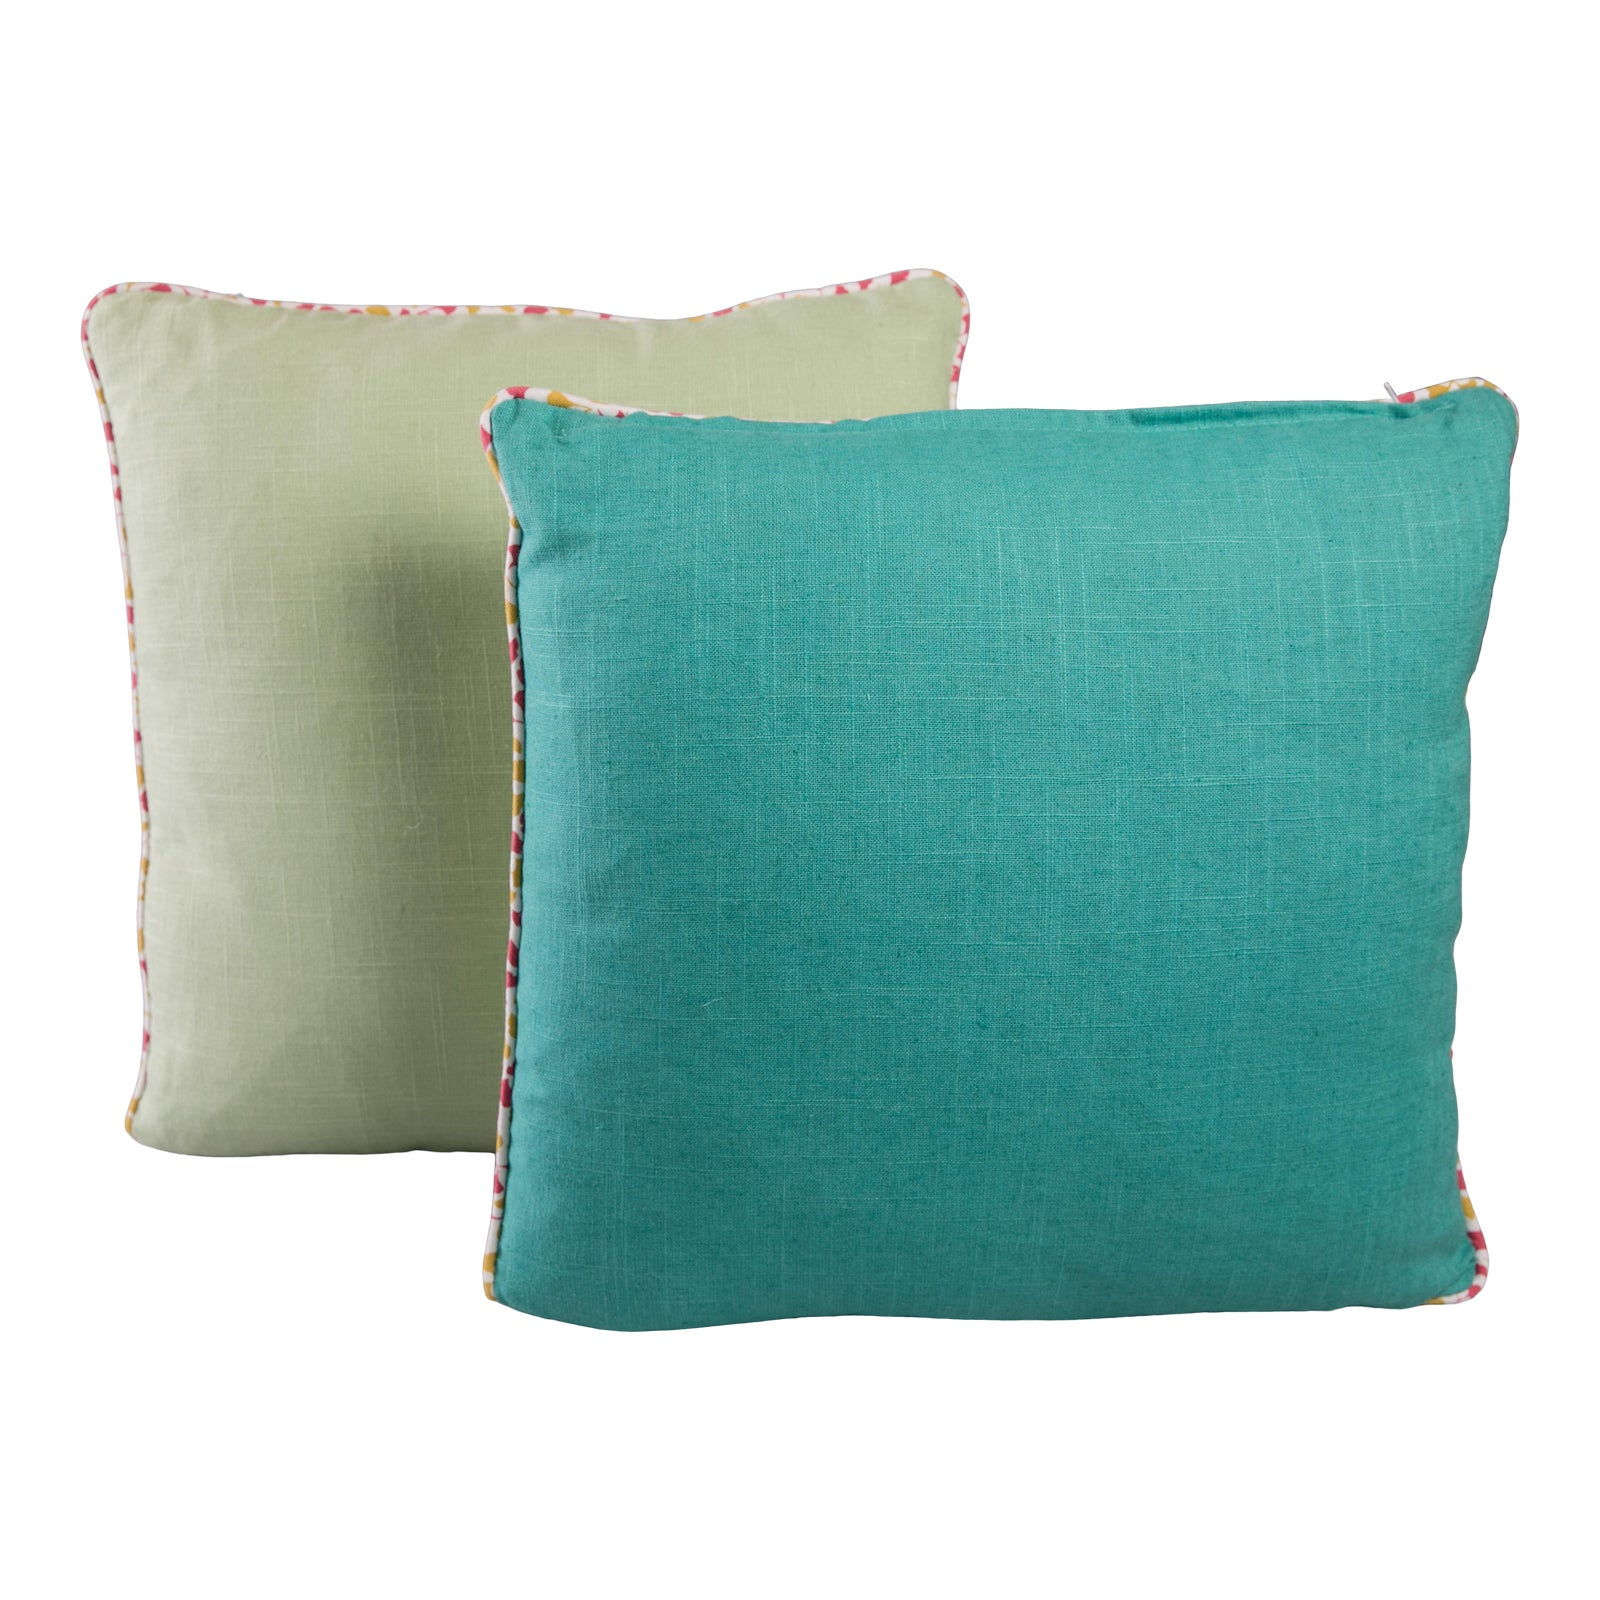 Contemporary Turquoise And Green Linen Pillow Covers A Pair